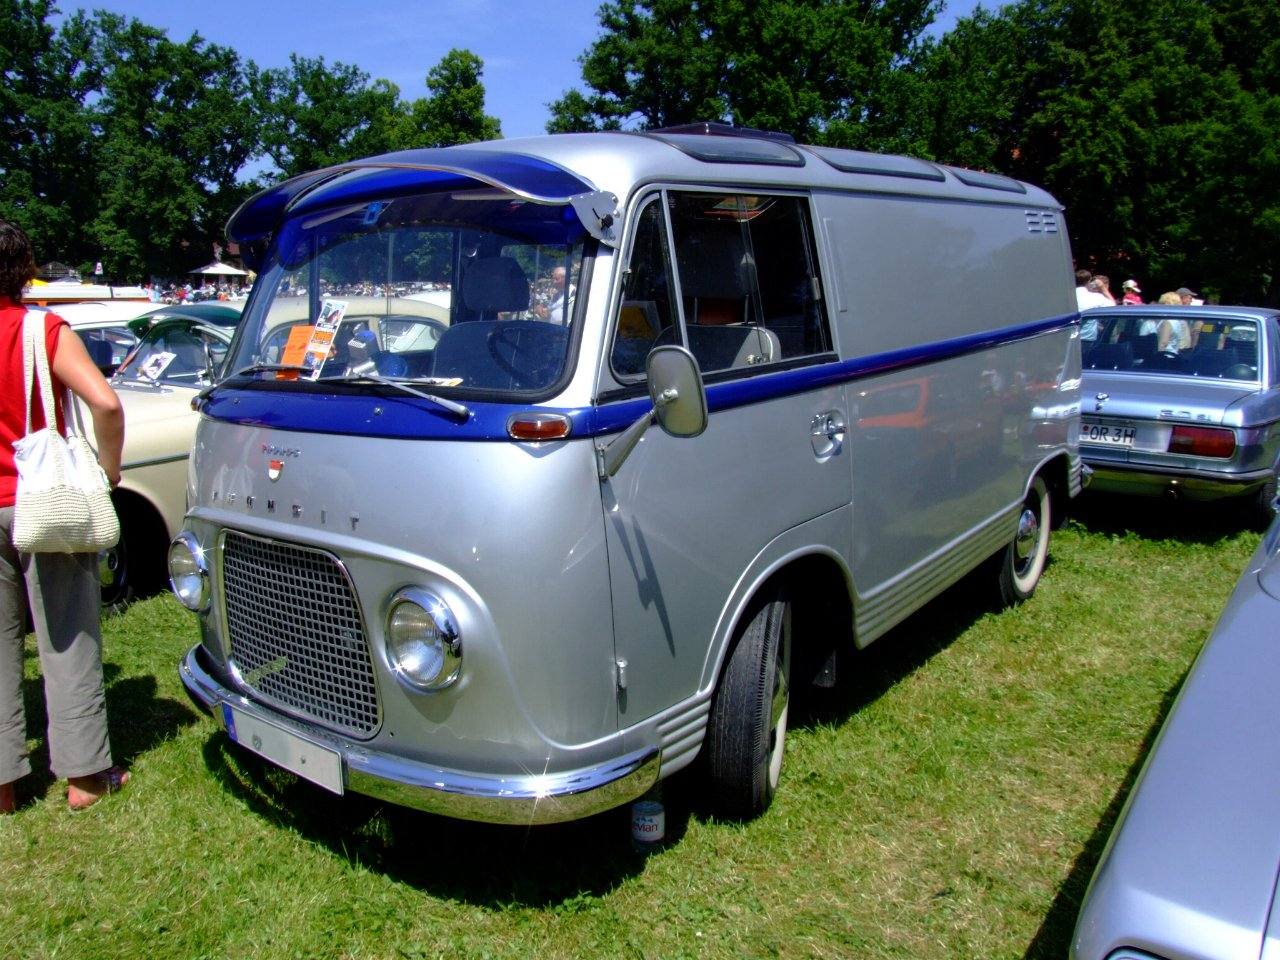 http://upload.wikimedia.org/wikipedia/commons/1/1b/Ford_Taunus_Transit_1964_1.JPG